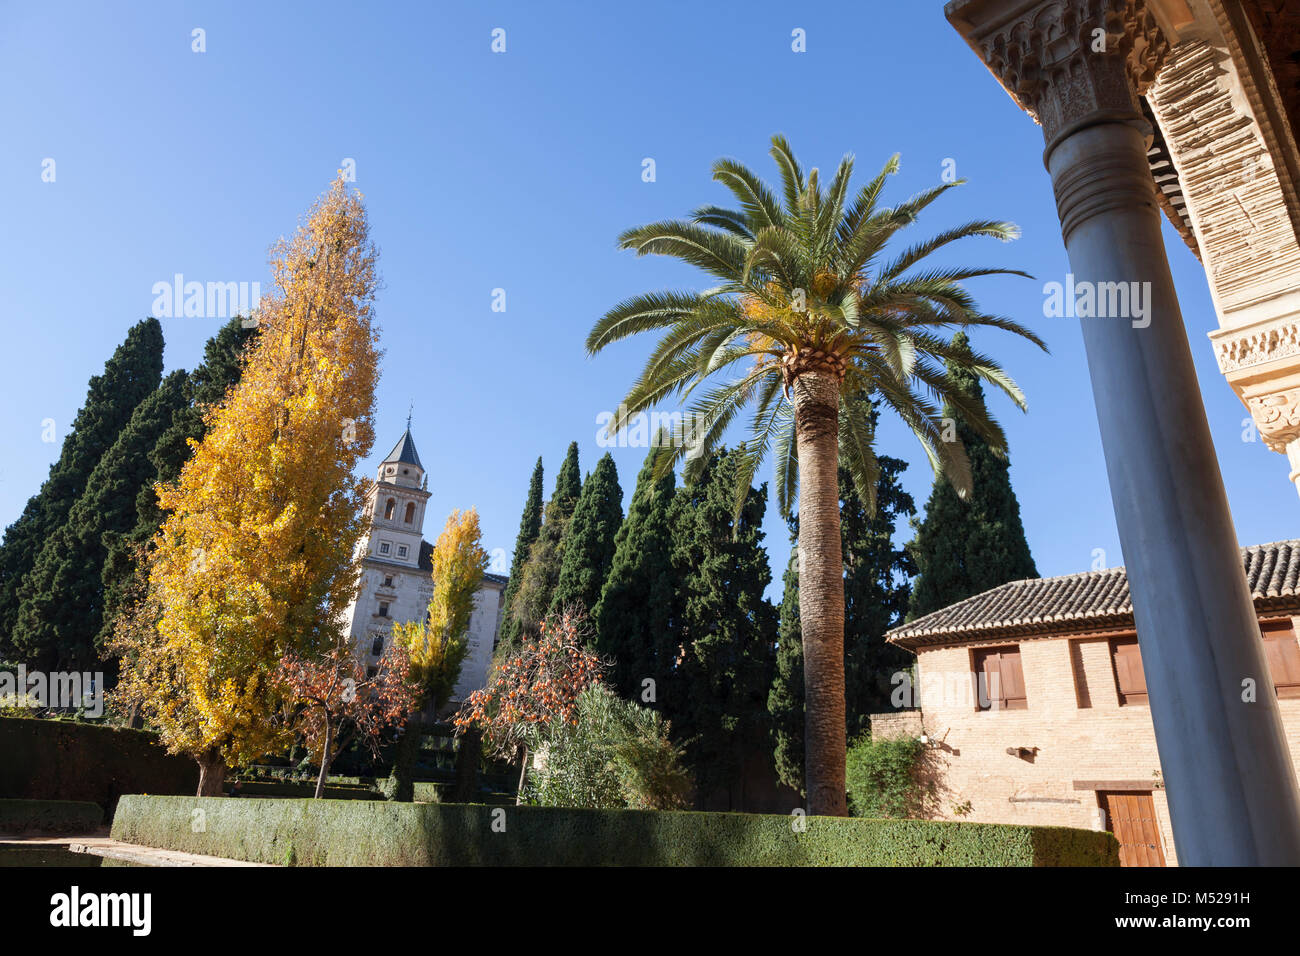 Granada, Spain: Jardines del Partal at the Torre de las Damas in the Alhambra Palace and Fortress. - Stock Image